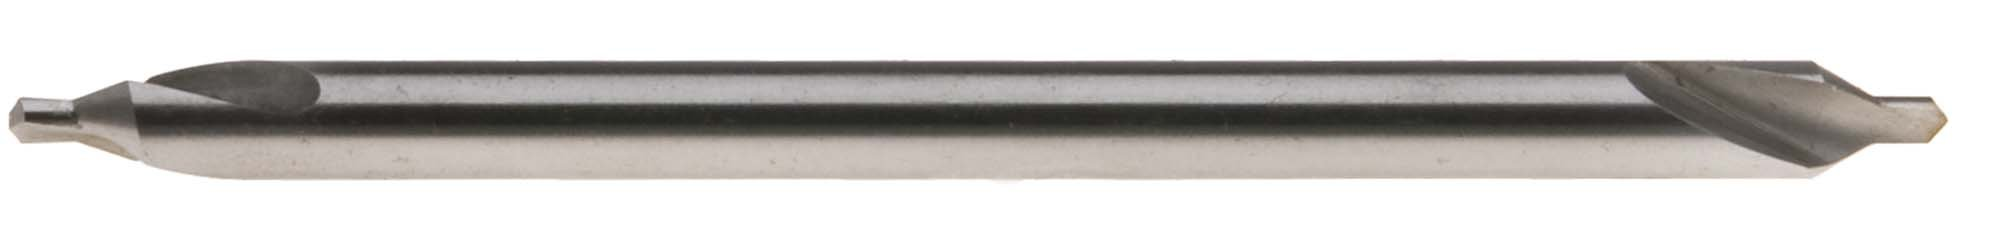 CDL-3-6#3x6'' Long Combined Drill and Countersink, High Speed Steel